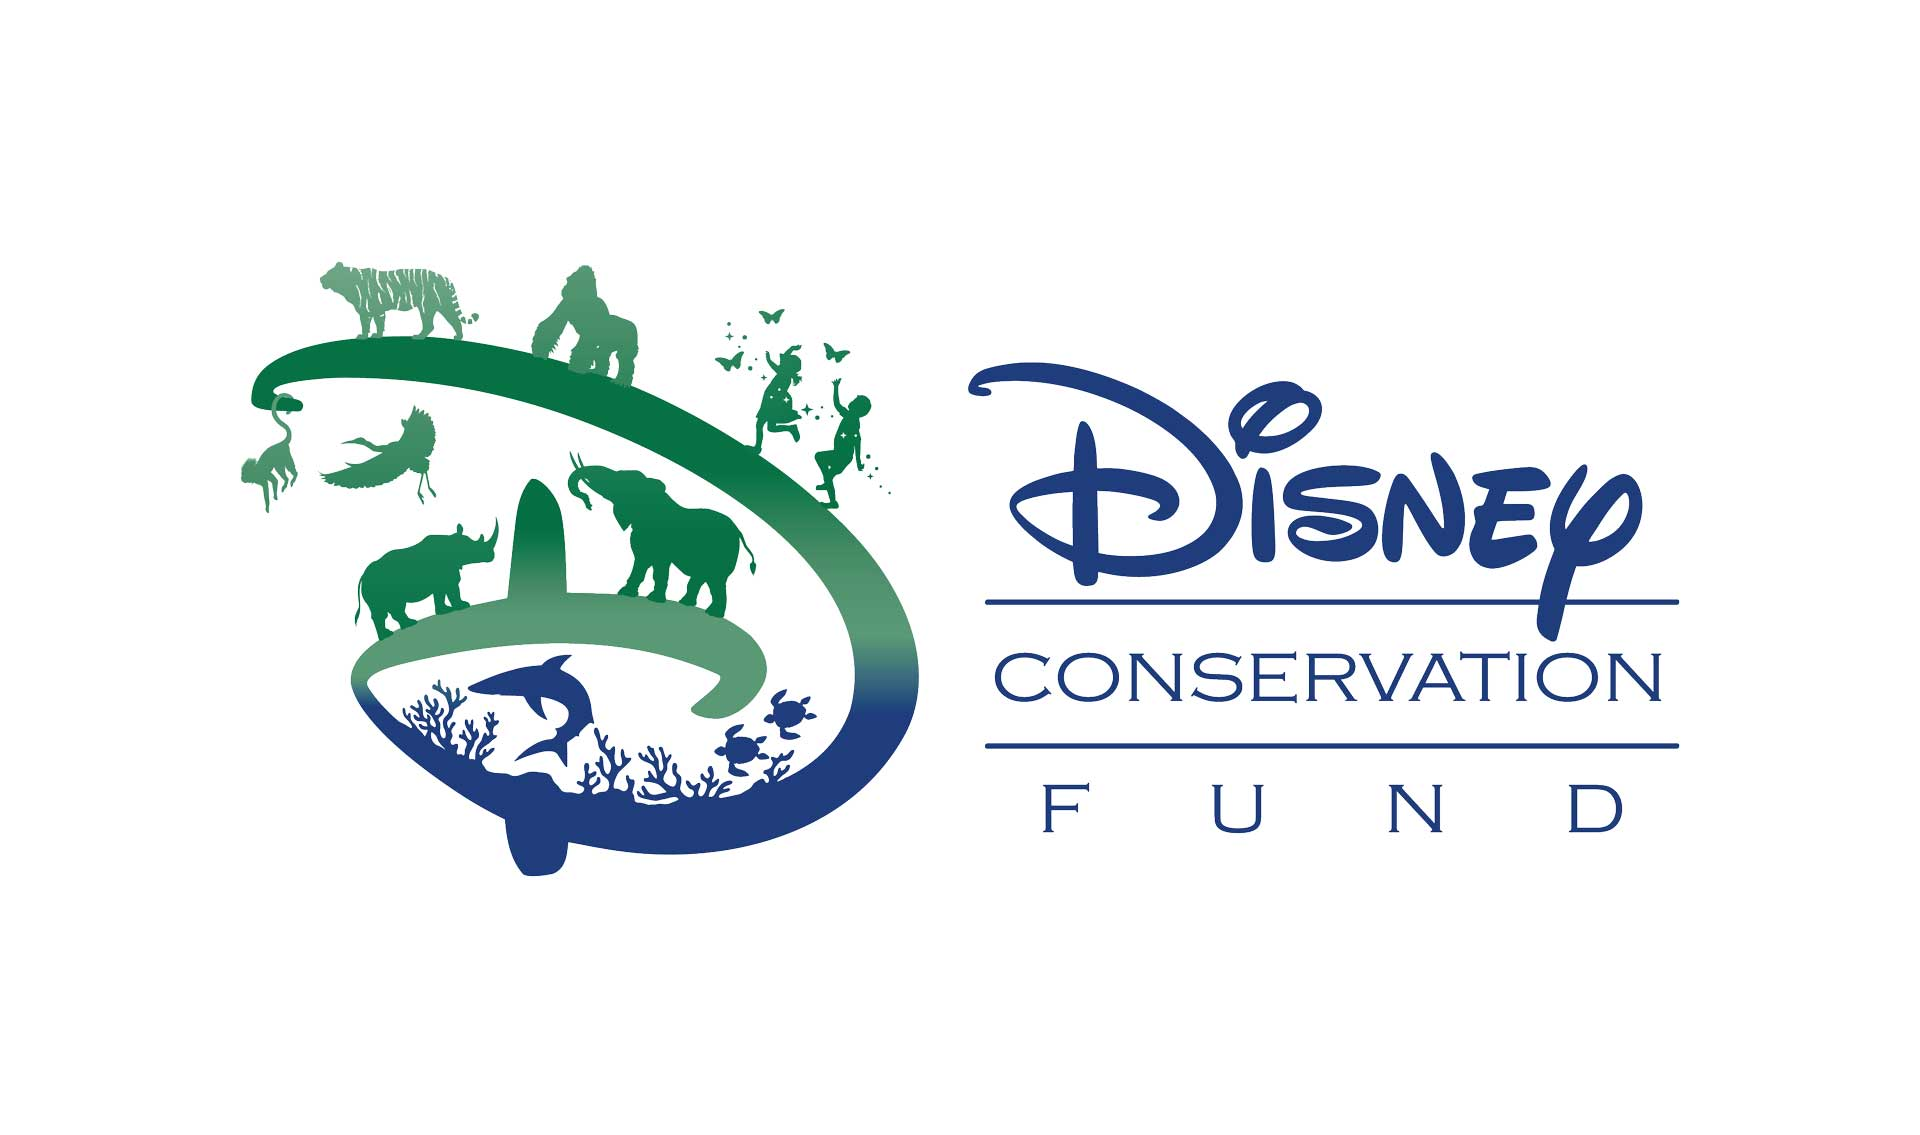 Environment - Enviromental Impact, News, Conservation Fund - The